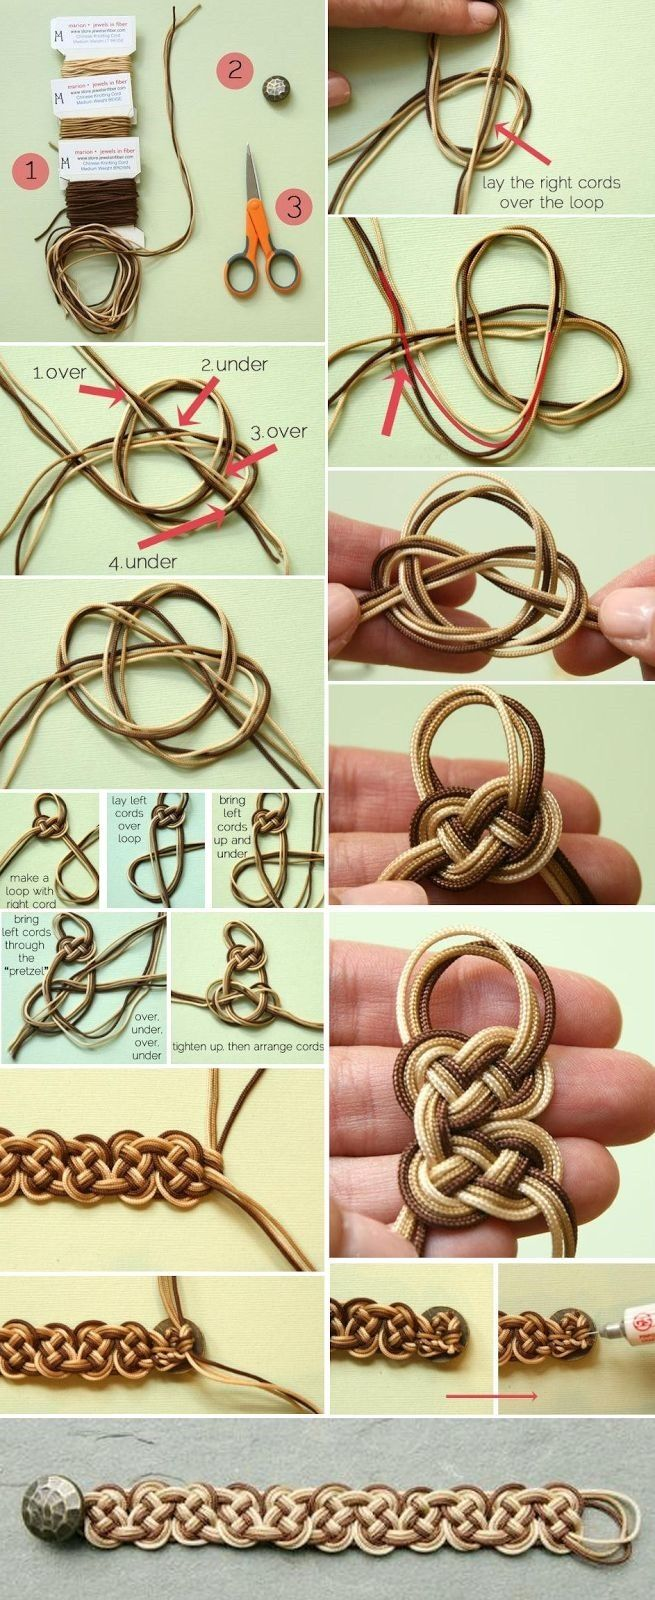 ombre celtic knot bracelet tutorial :: diy jewelry making supplies...I'm not 100% sure I can follow along with what it's trying to show...but it looks cool!